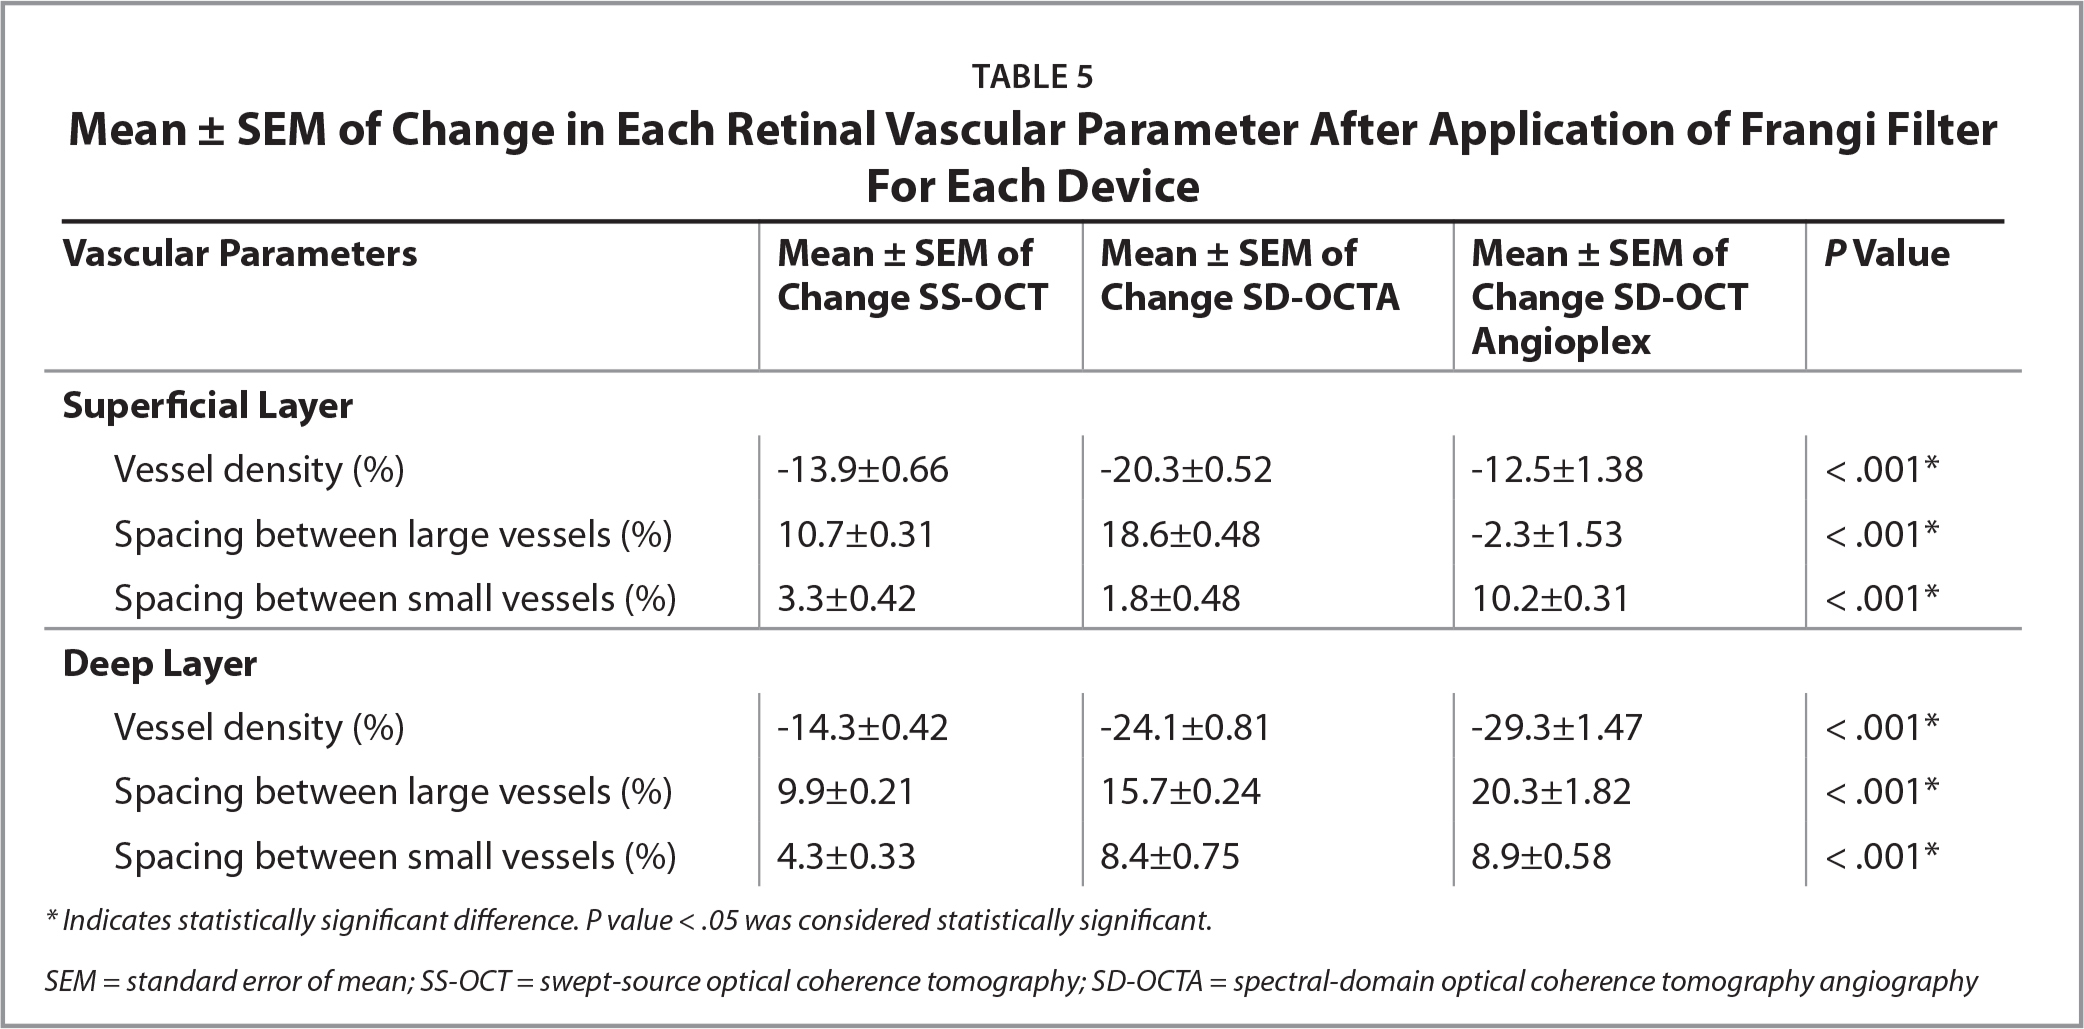 Mean ± SEM of Change in Each Retinal Vascular Parameter After Application of Frangi Filter For Each Device